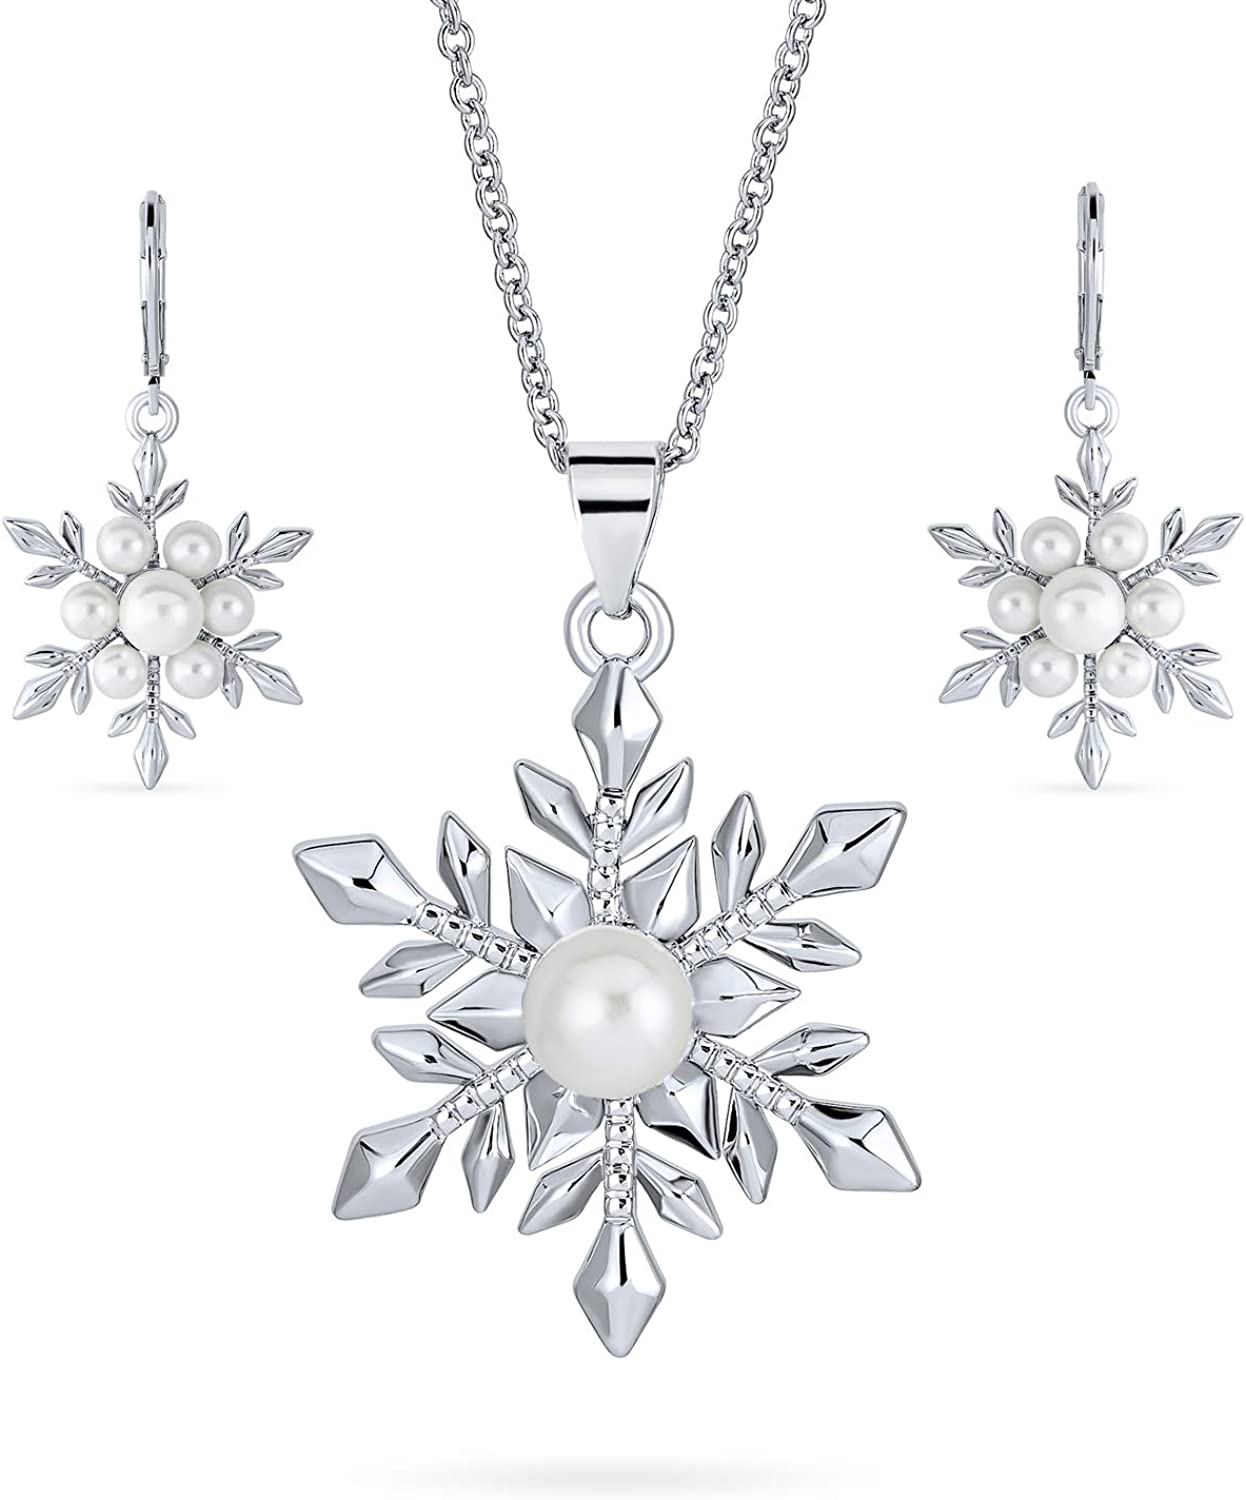 Christmas White Simulated Manufacturer regenerated product Pearl Snowflake Safety and trust Holiday Pendant Party